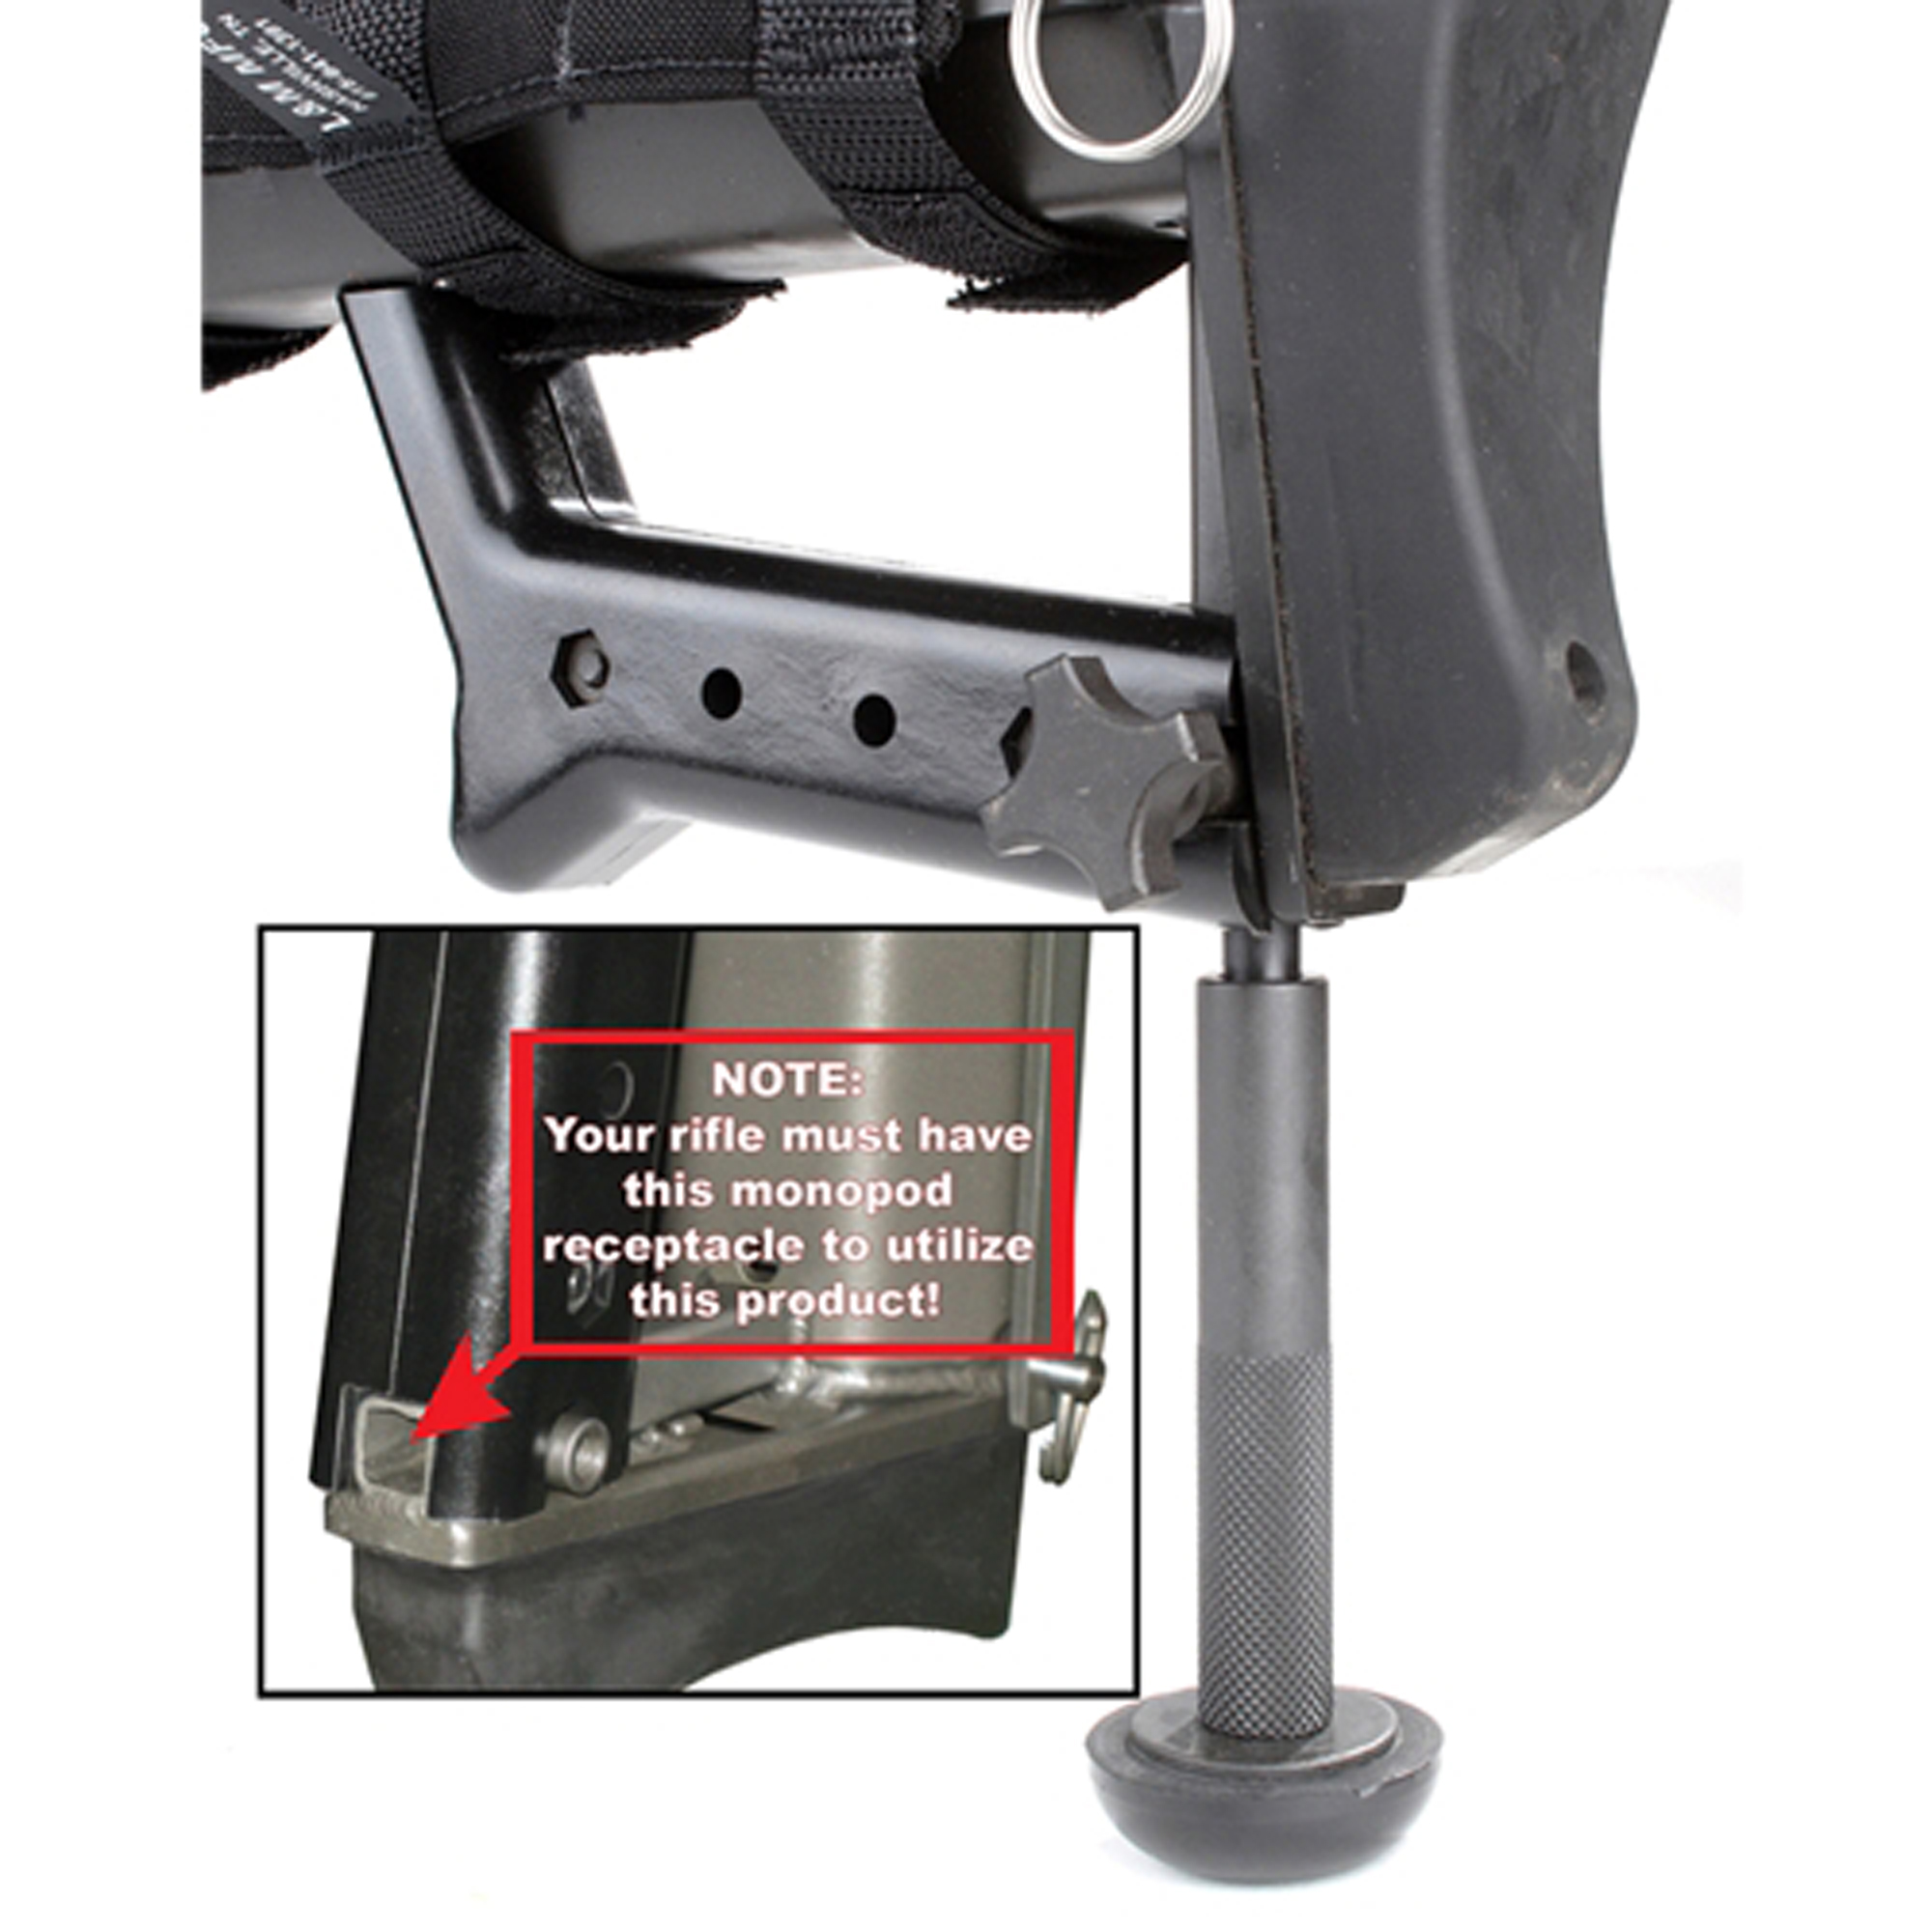 "Barrett's MONOPOD Complete Assembly Kit is for 50BMG 82A1"" 99 and 95 rifles. It is designed to be used with the integral monopod leg mounting receptacle. It comes with a monopod lock knob."